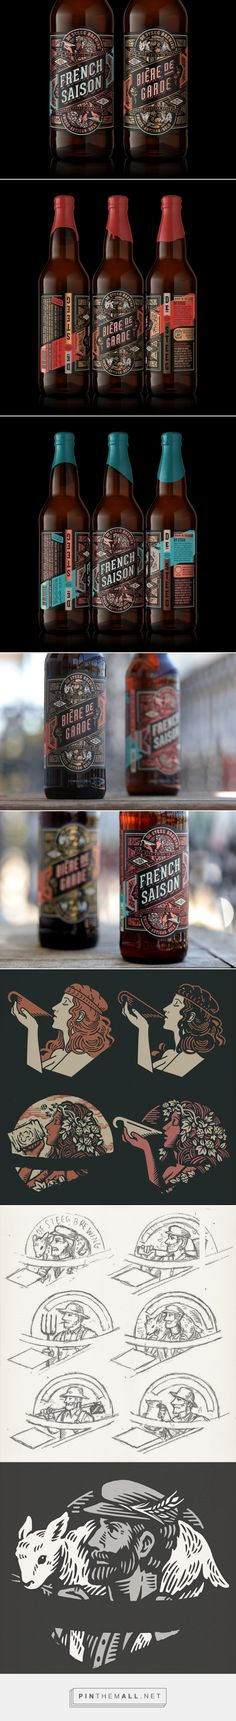 De Steeg Brewing beer packaging design by TILT - http://www.packagingoftheworld.com/2017/04/de-steeg-brewing.html